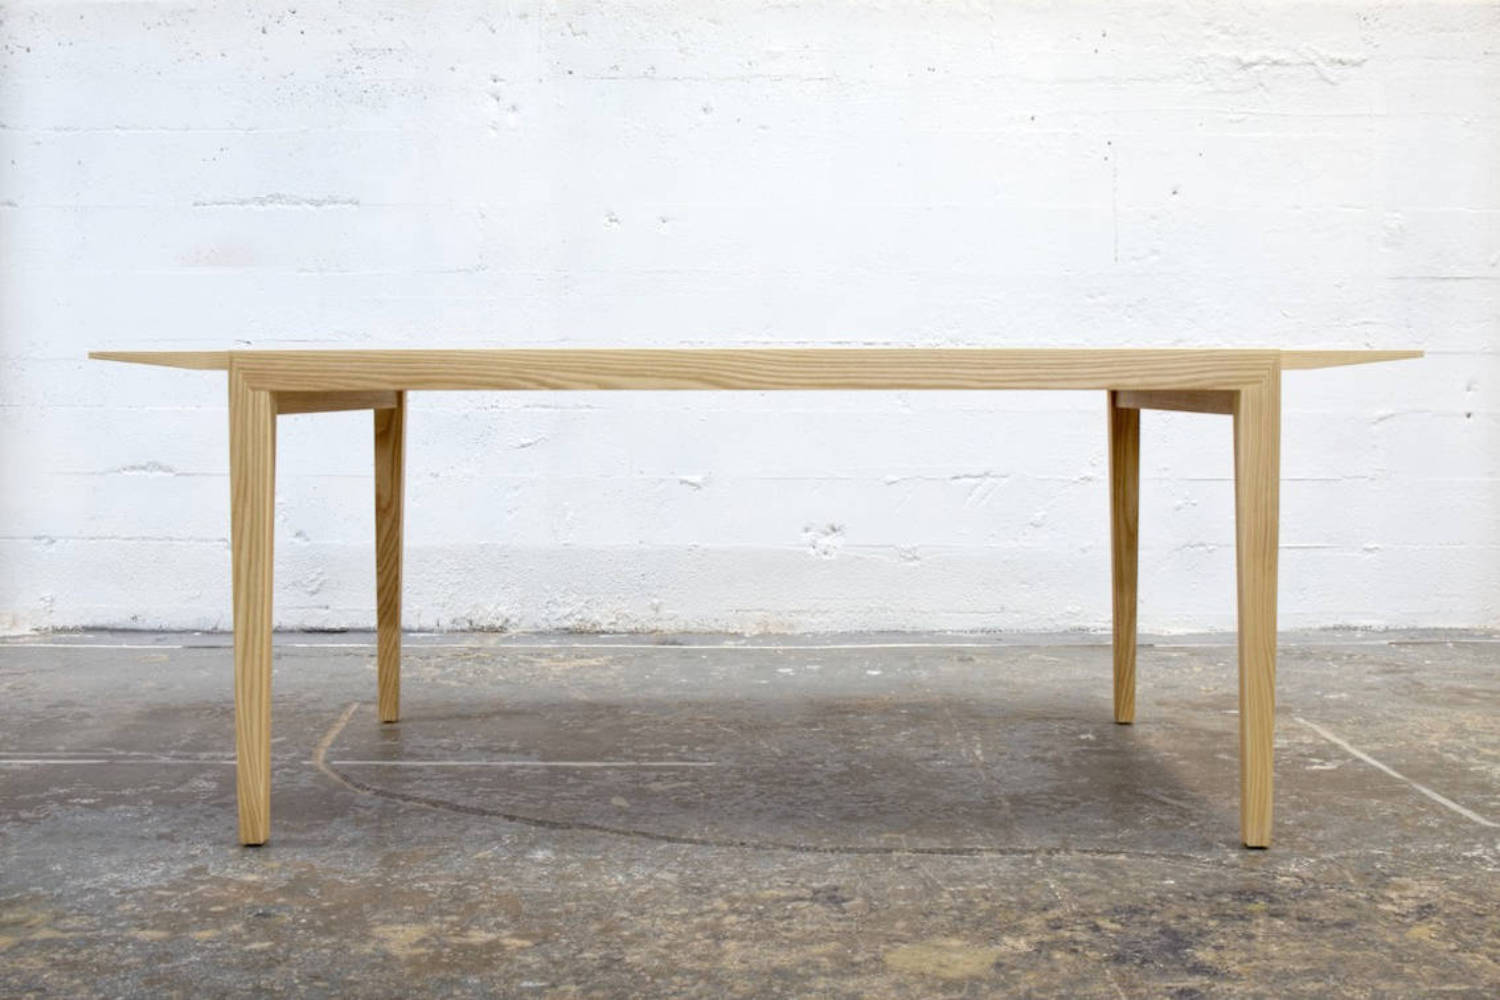 Wing wooden table